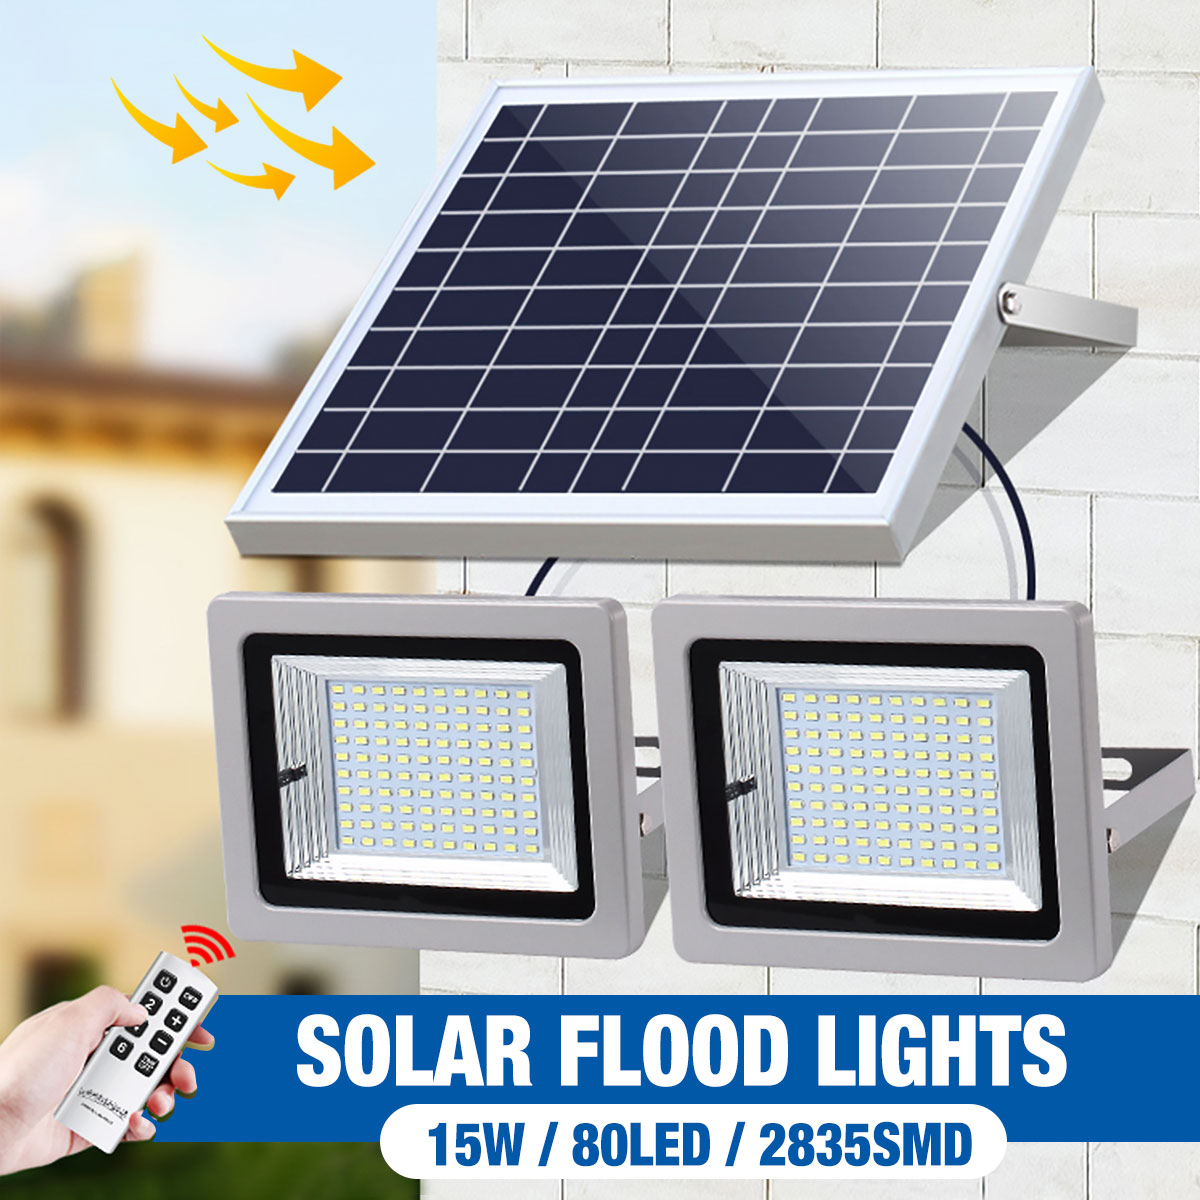 2X Remote Control 100LED FloodLight  Dimable Timer Waterproof Solar Light Street